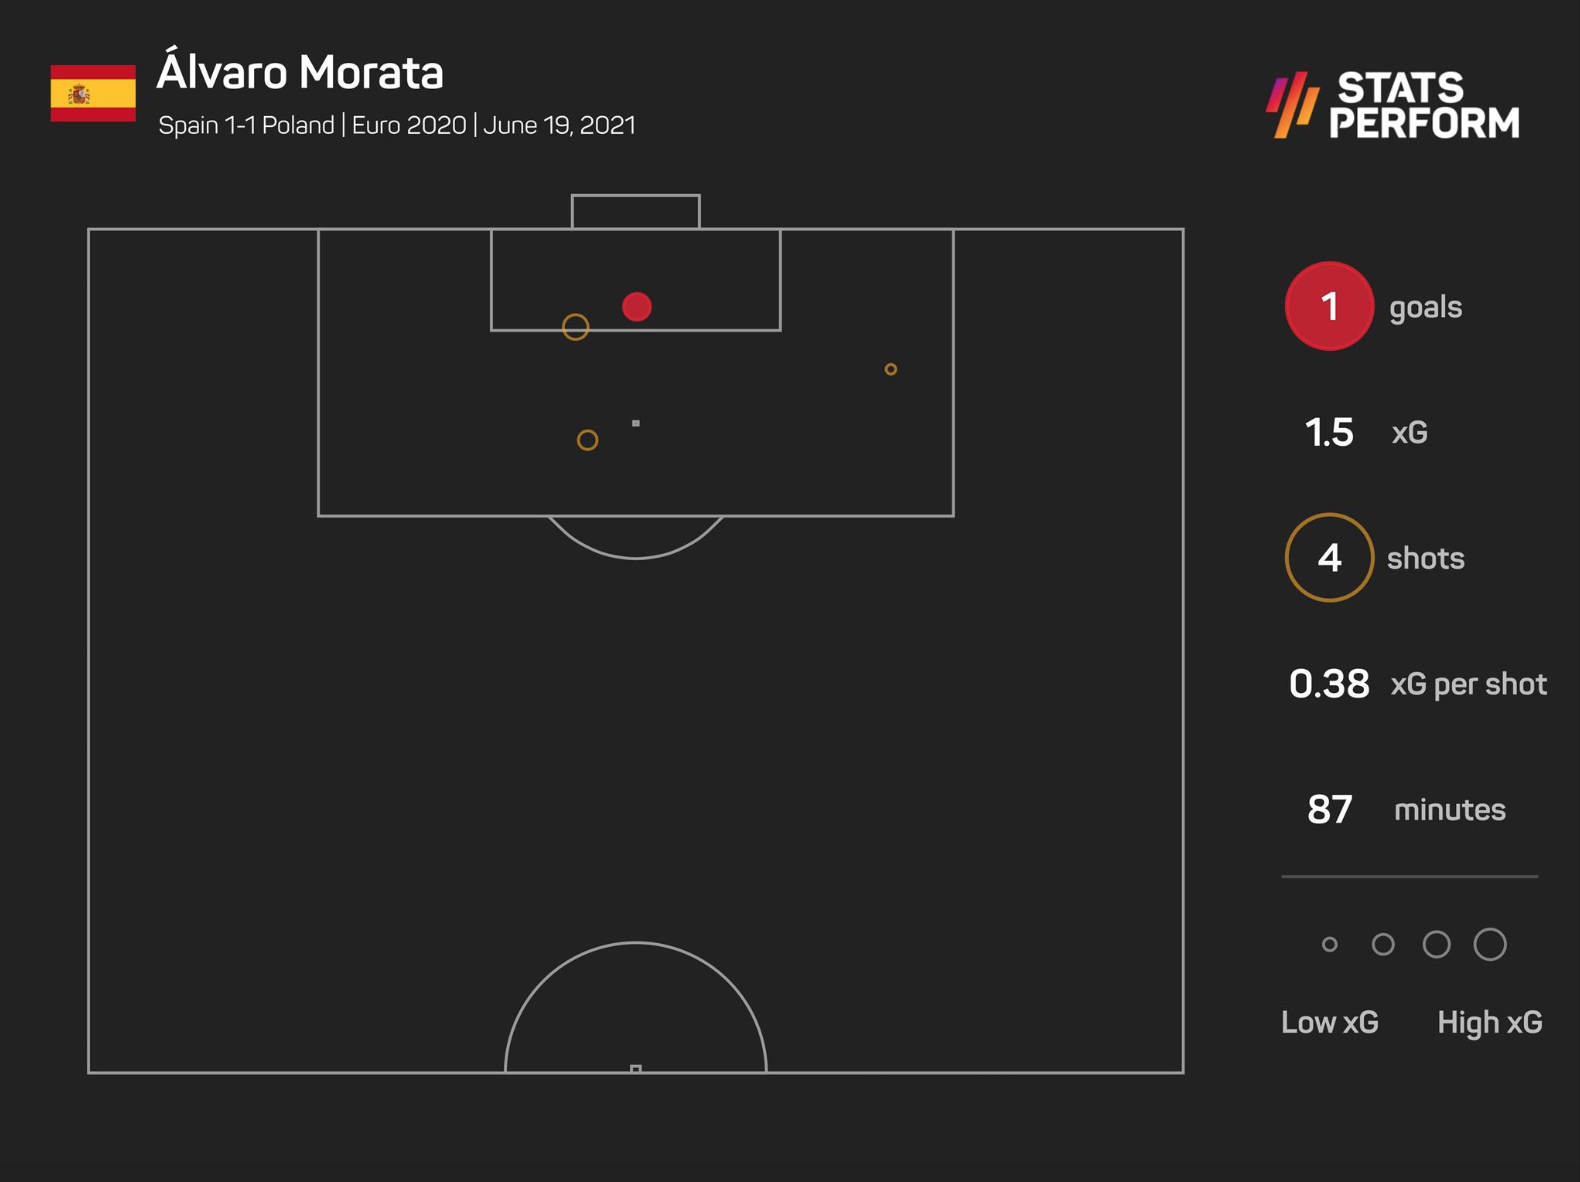 Alvaro Morata's highs and lows were on show against Poland